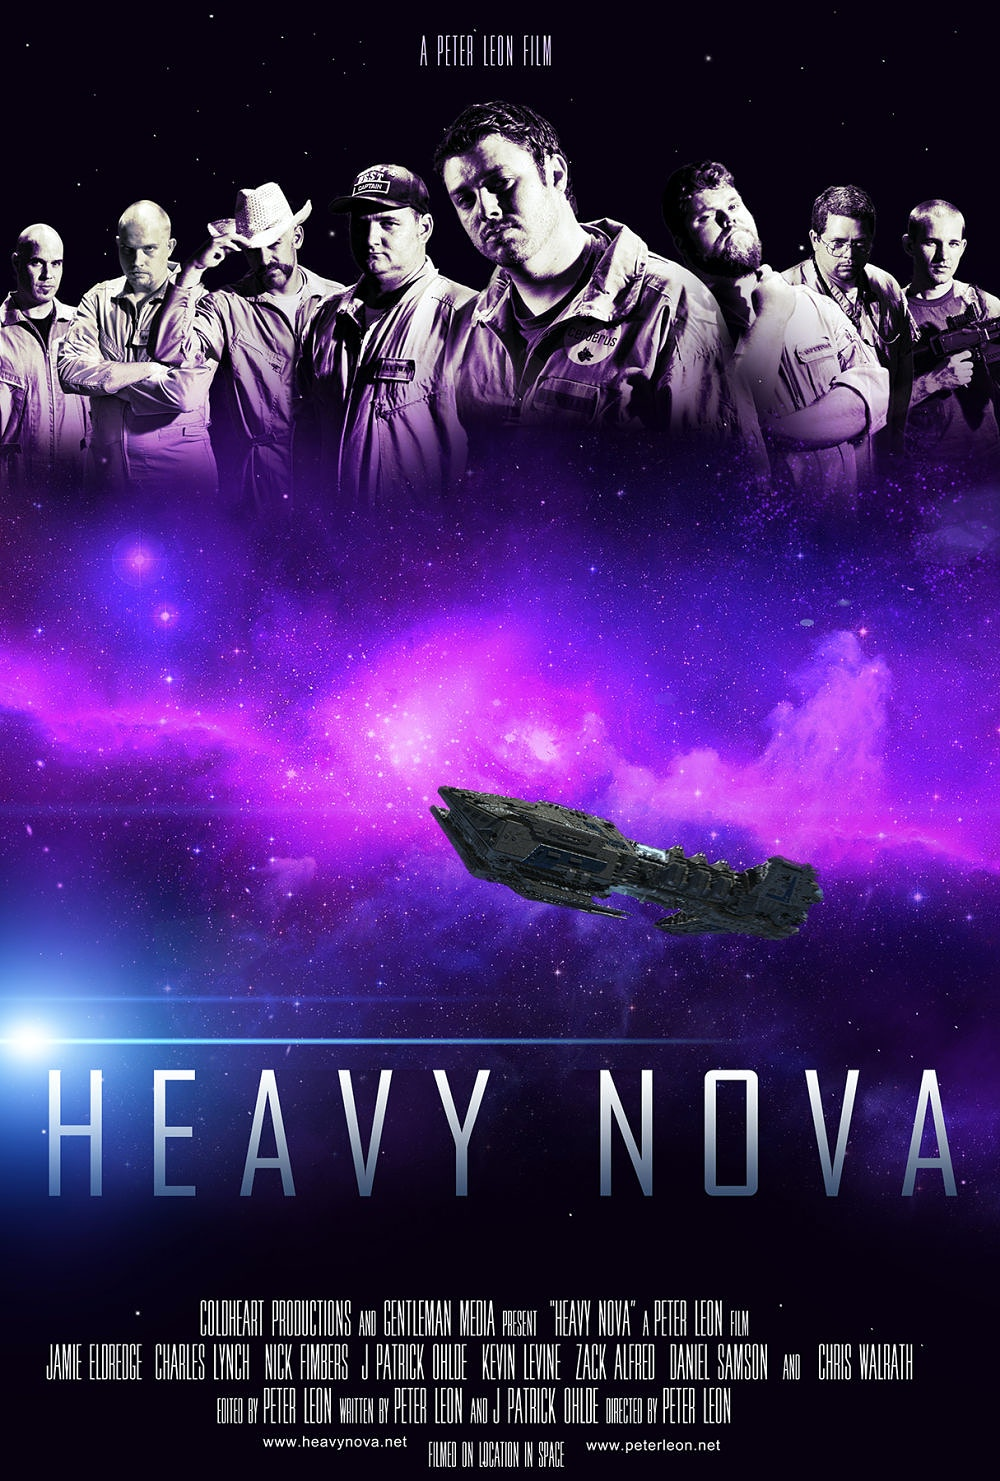 HEAVY NOVA - PETERLEON.ORG